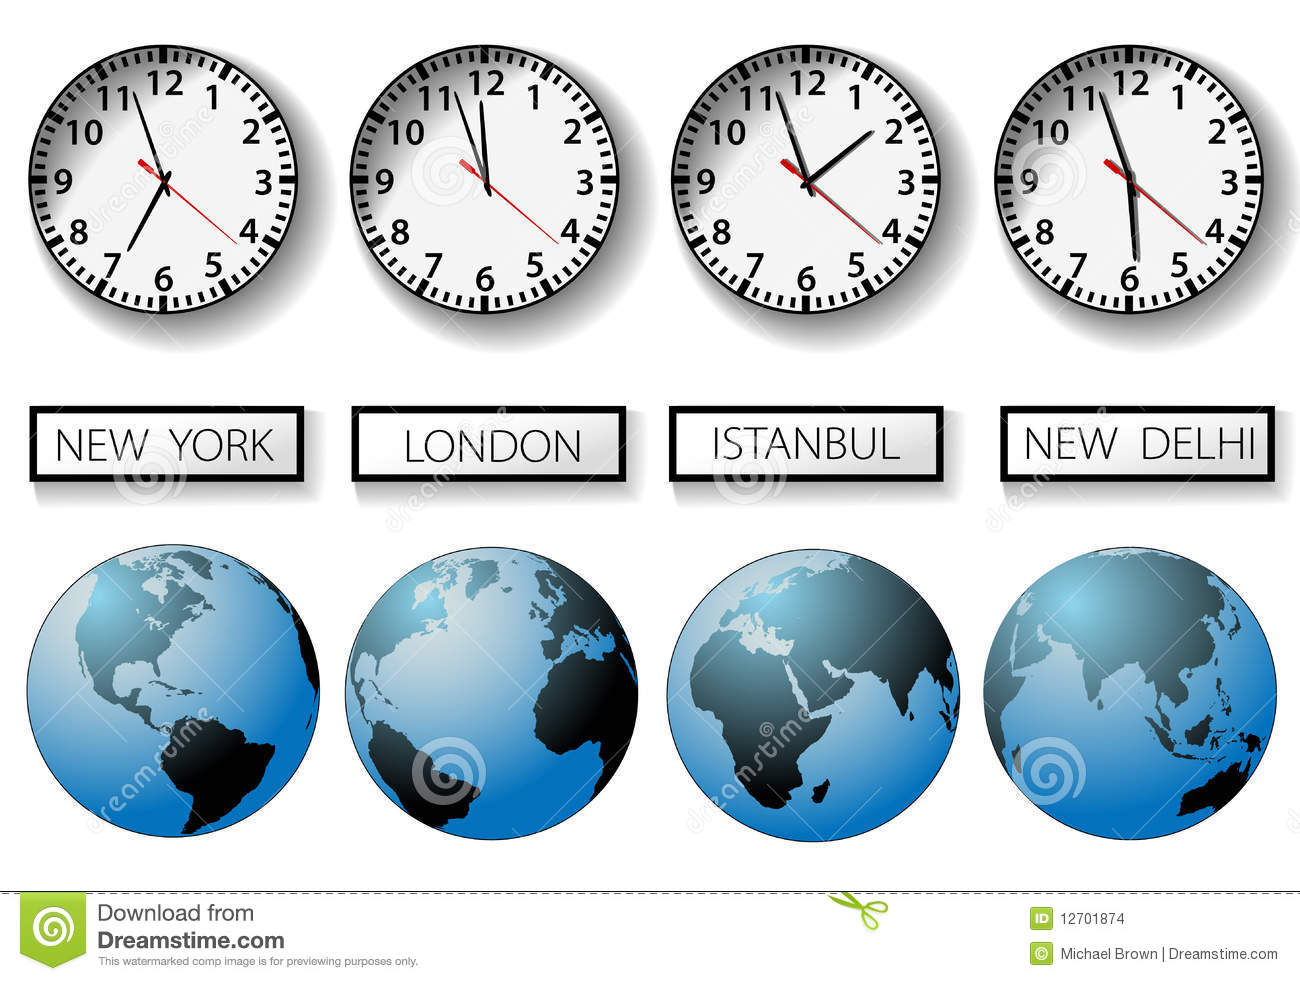 Four clocks and globes for world time zones with city name signs.